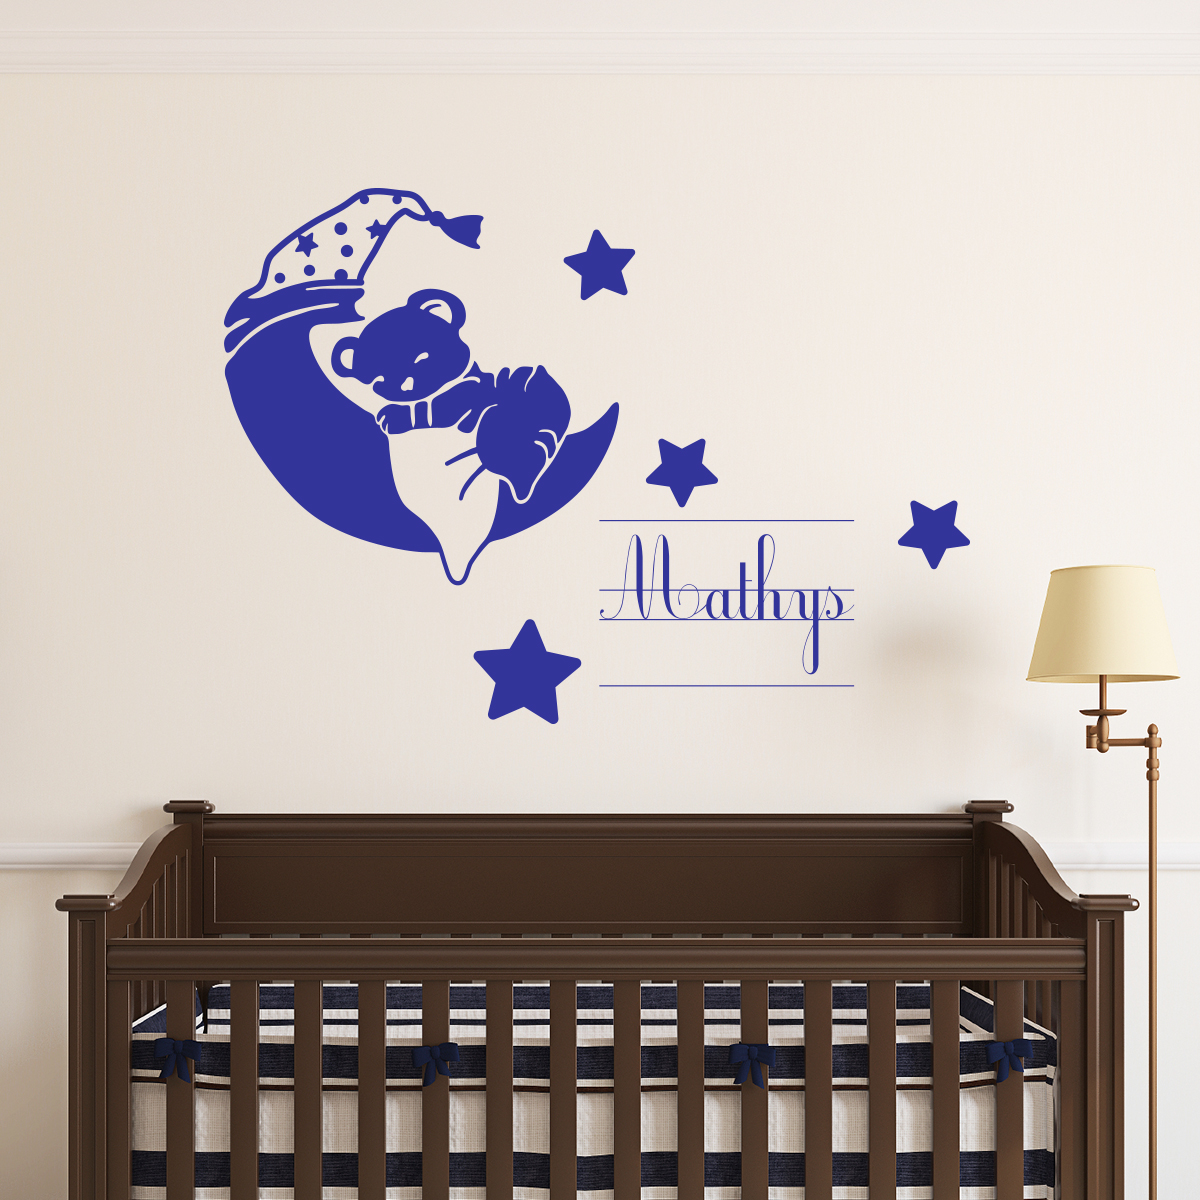 sticker pr nom personnalis ourson endormi mini stickers pr nom perso ambiance sticker. Black Bedroom Furniture Sets. Home Design Ideas